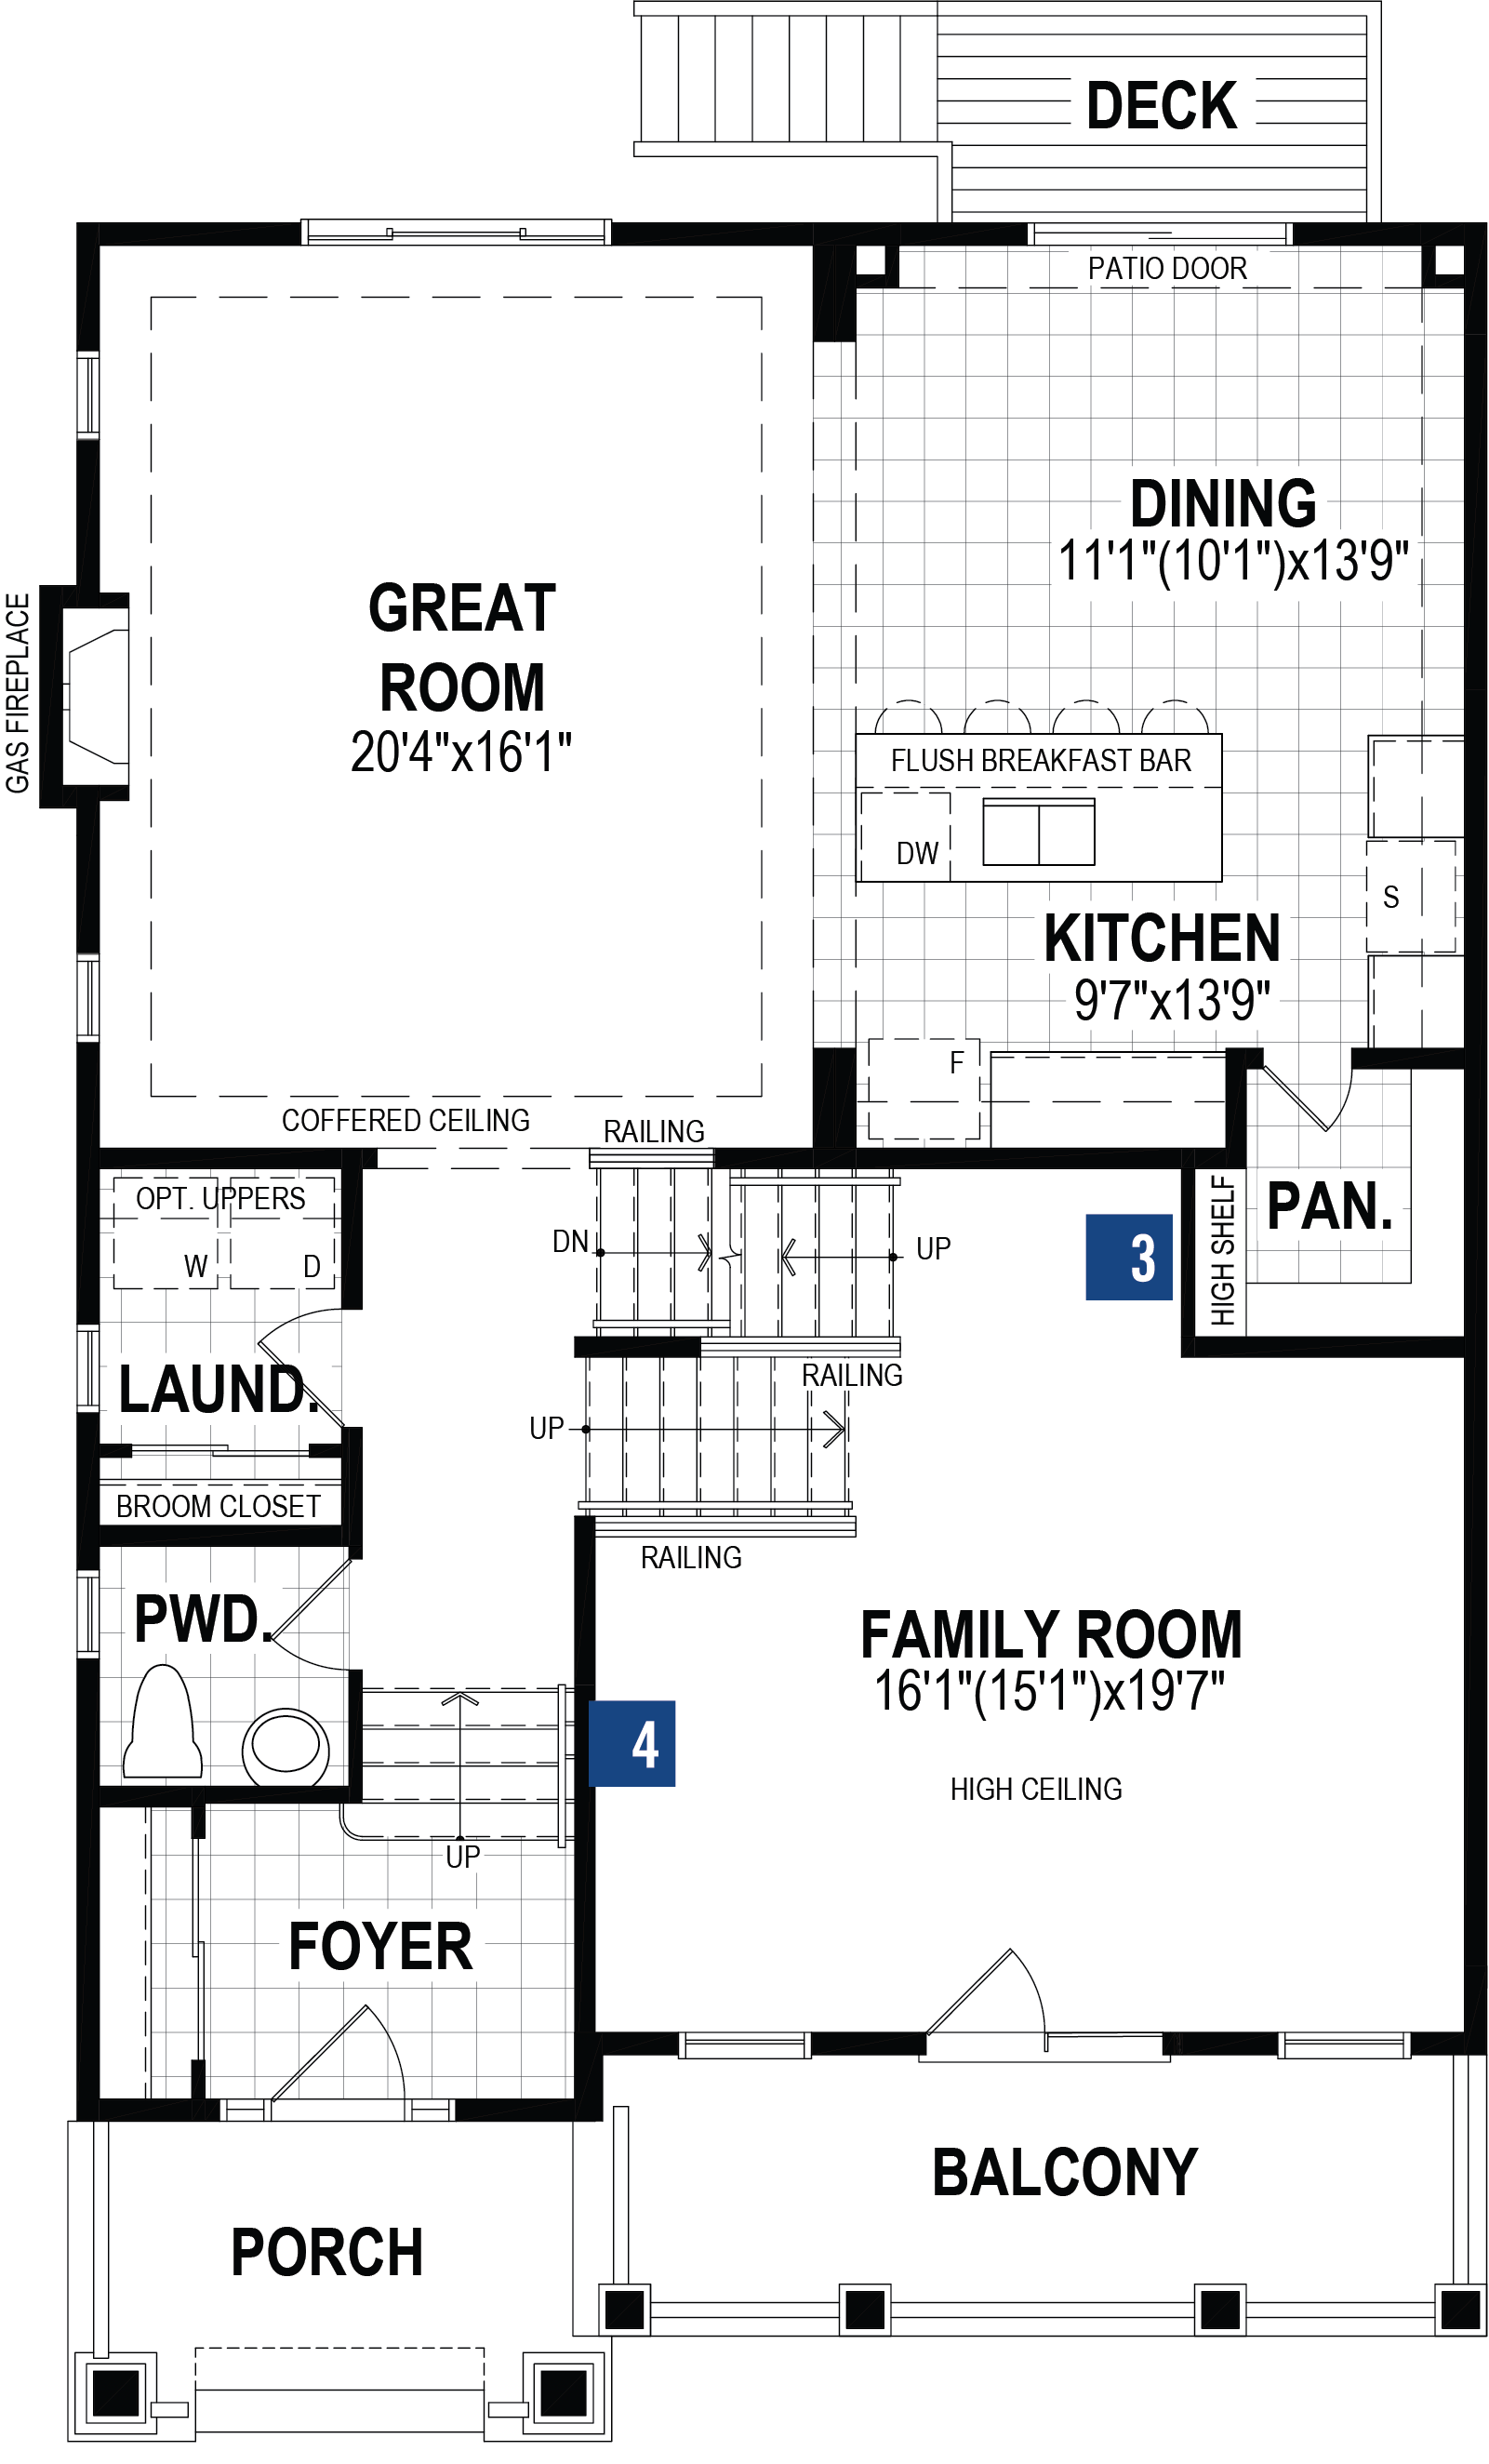 Pearl Plan Floor Plan at Cityscape in Calgary Alberta by Mattamy Homes